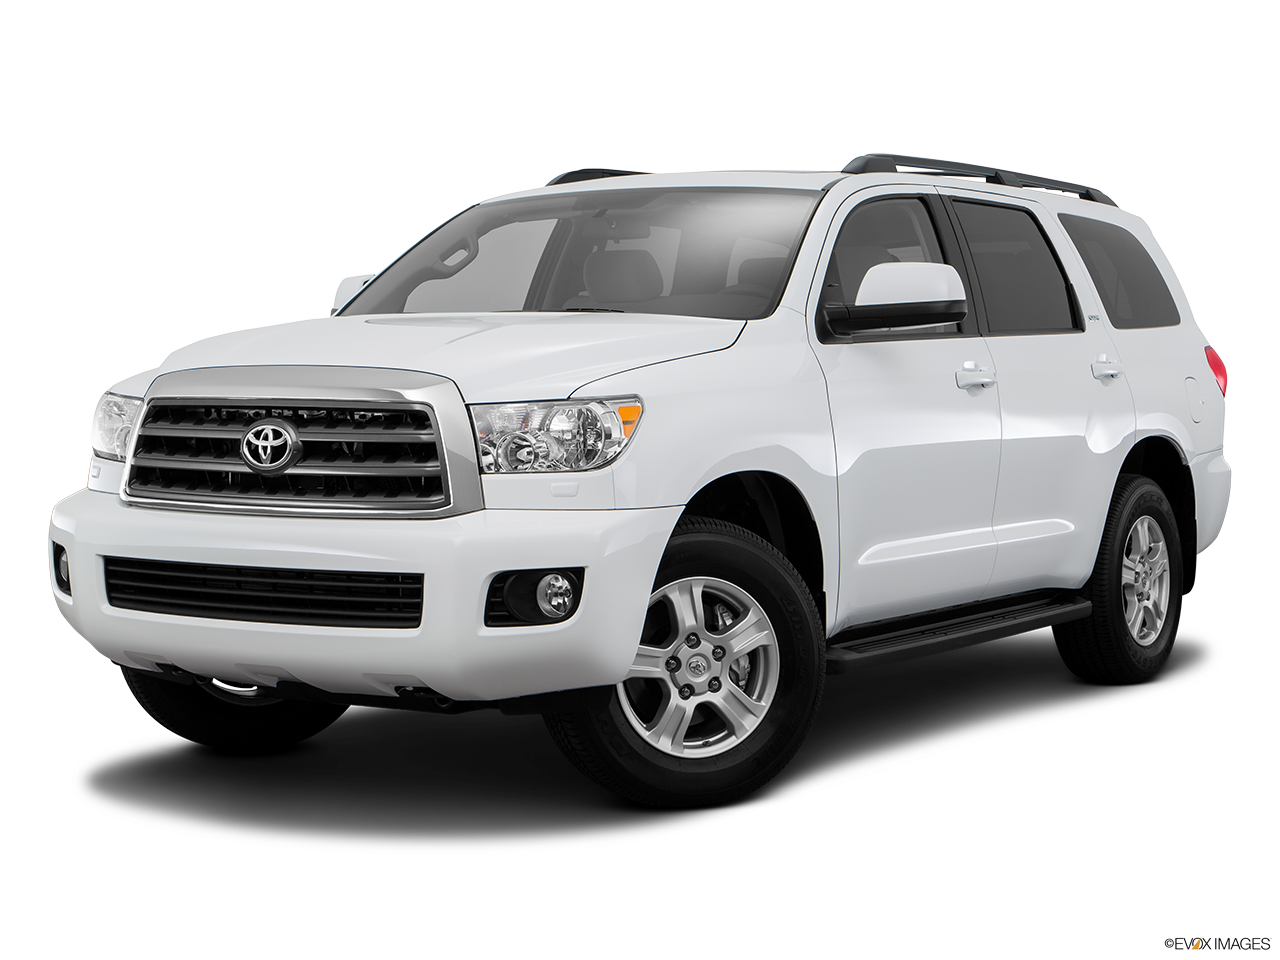 Test Drive A 2016 Toyota Sequoia at Moss Bros Toyota of Moreno Valley in Moreno Valley